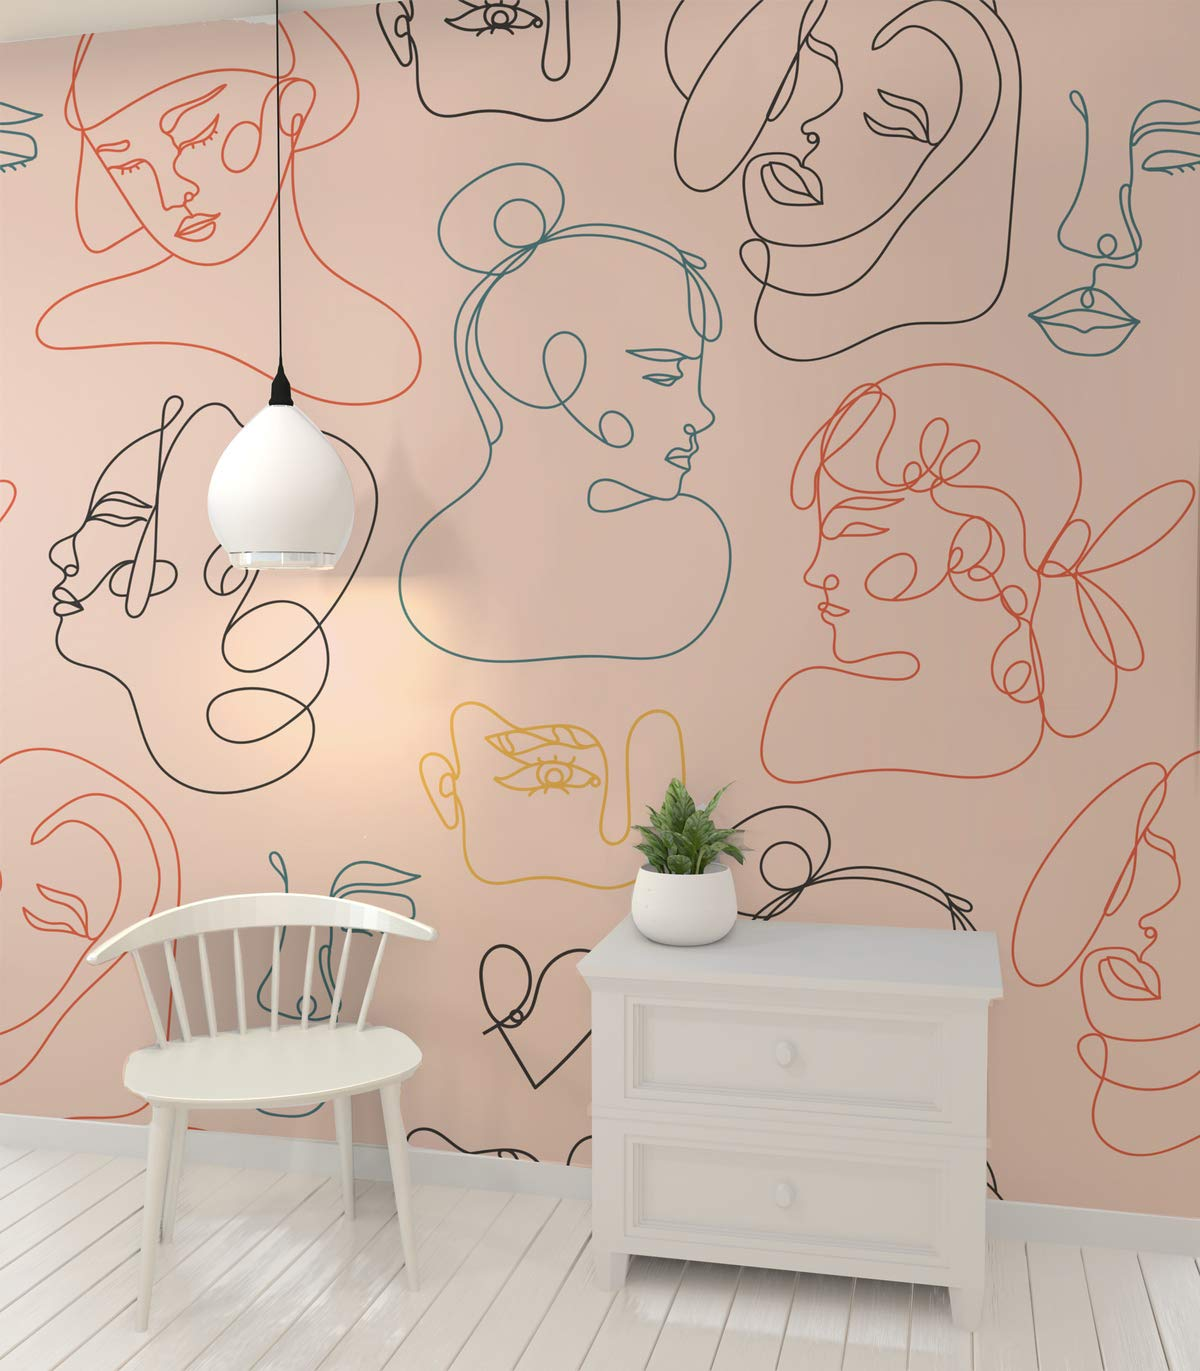 3D Abstract E286 Removable Wallpaper Self Adhesive Wallpaper Extra Large Peel /& Stick Wallpaper Wallpaper Mural AJ WALLPAPERS